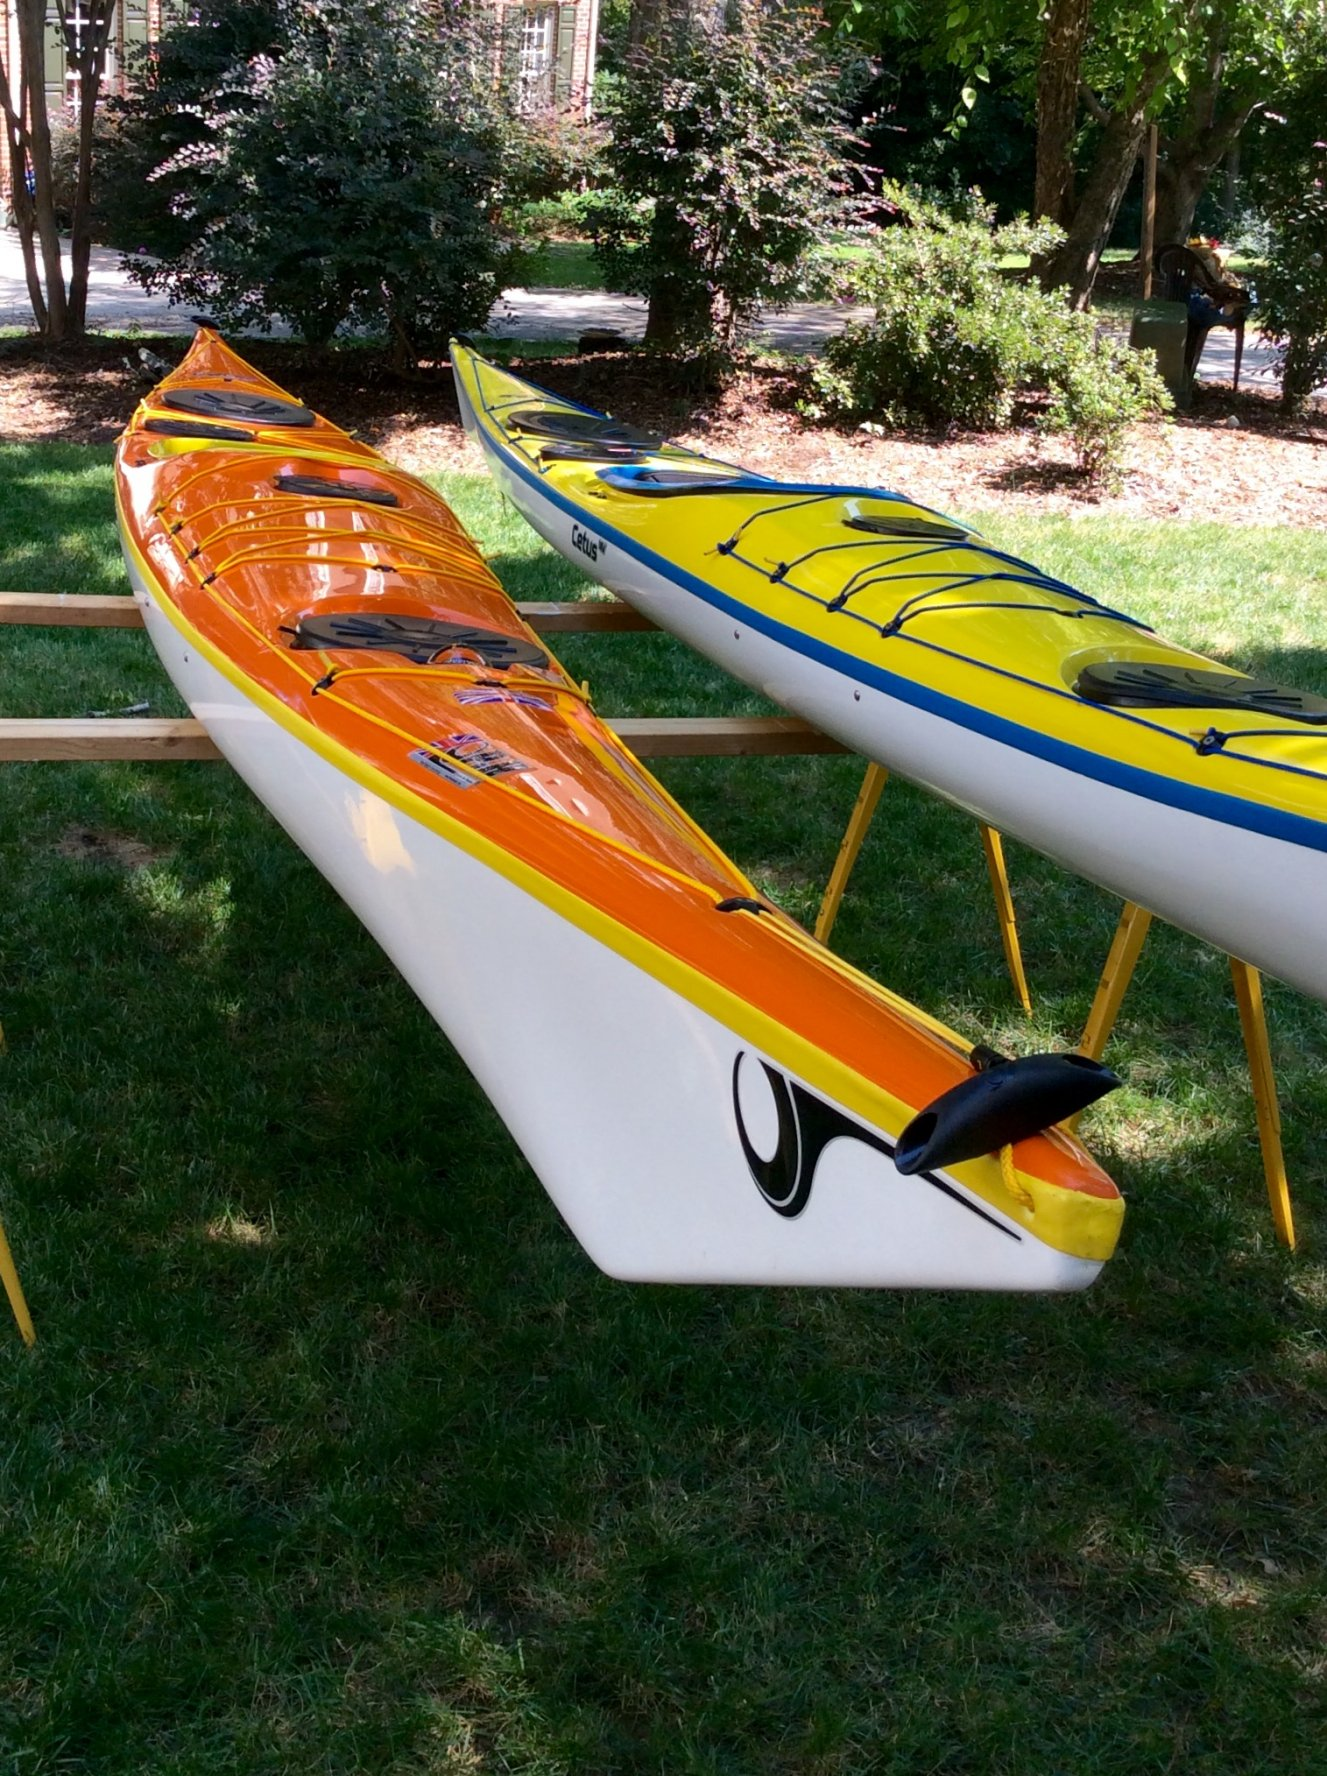 P Amp H Cetus Kayaks In Nc Expedition Portal